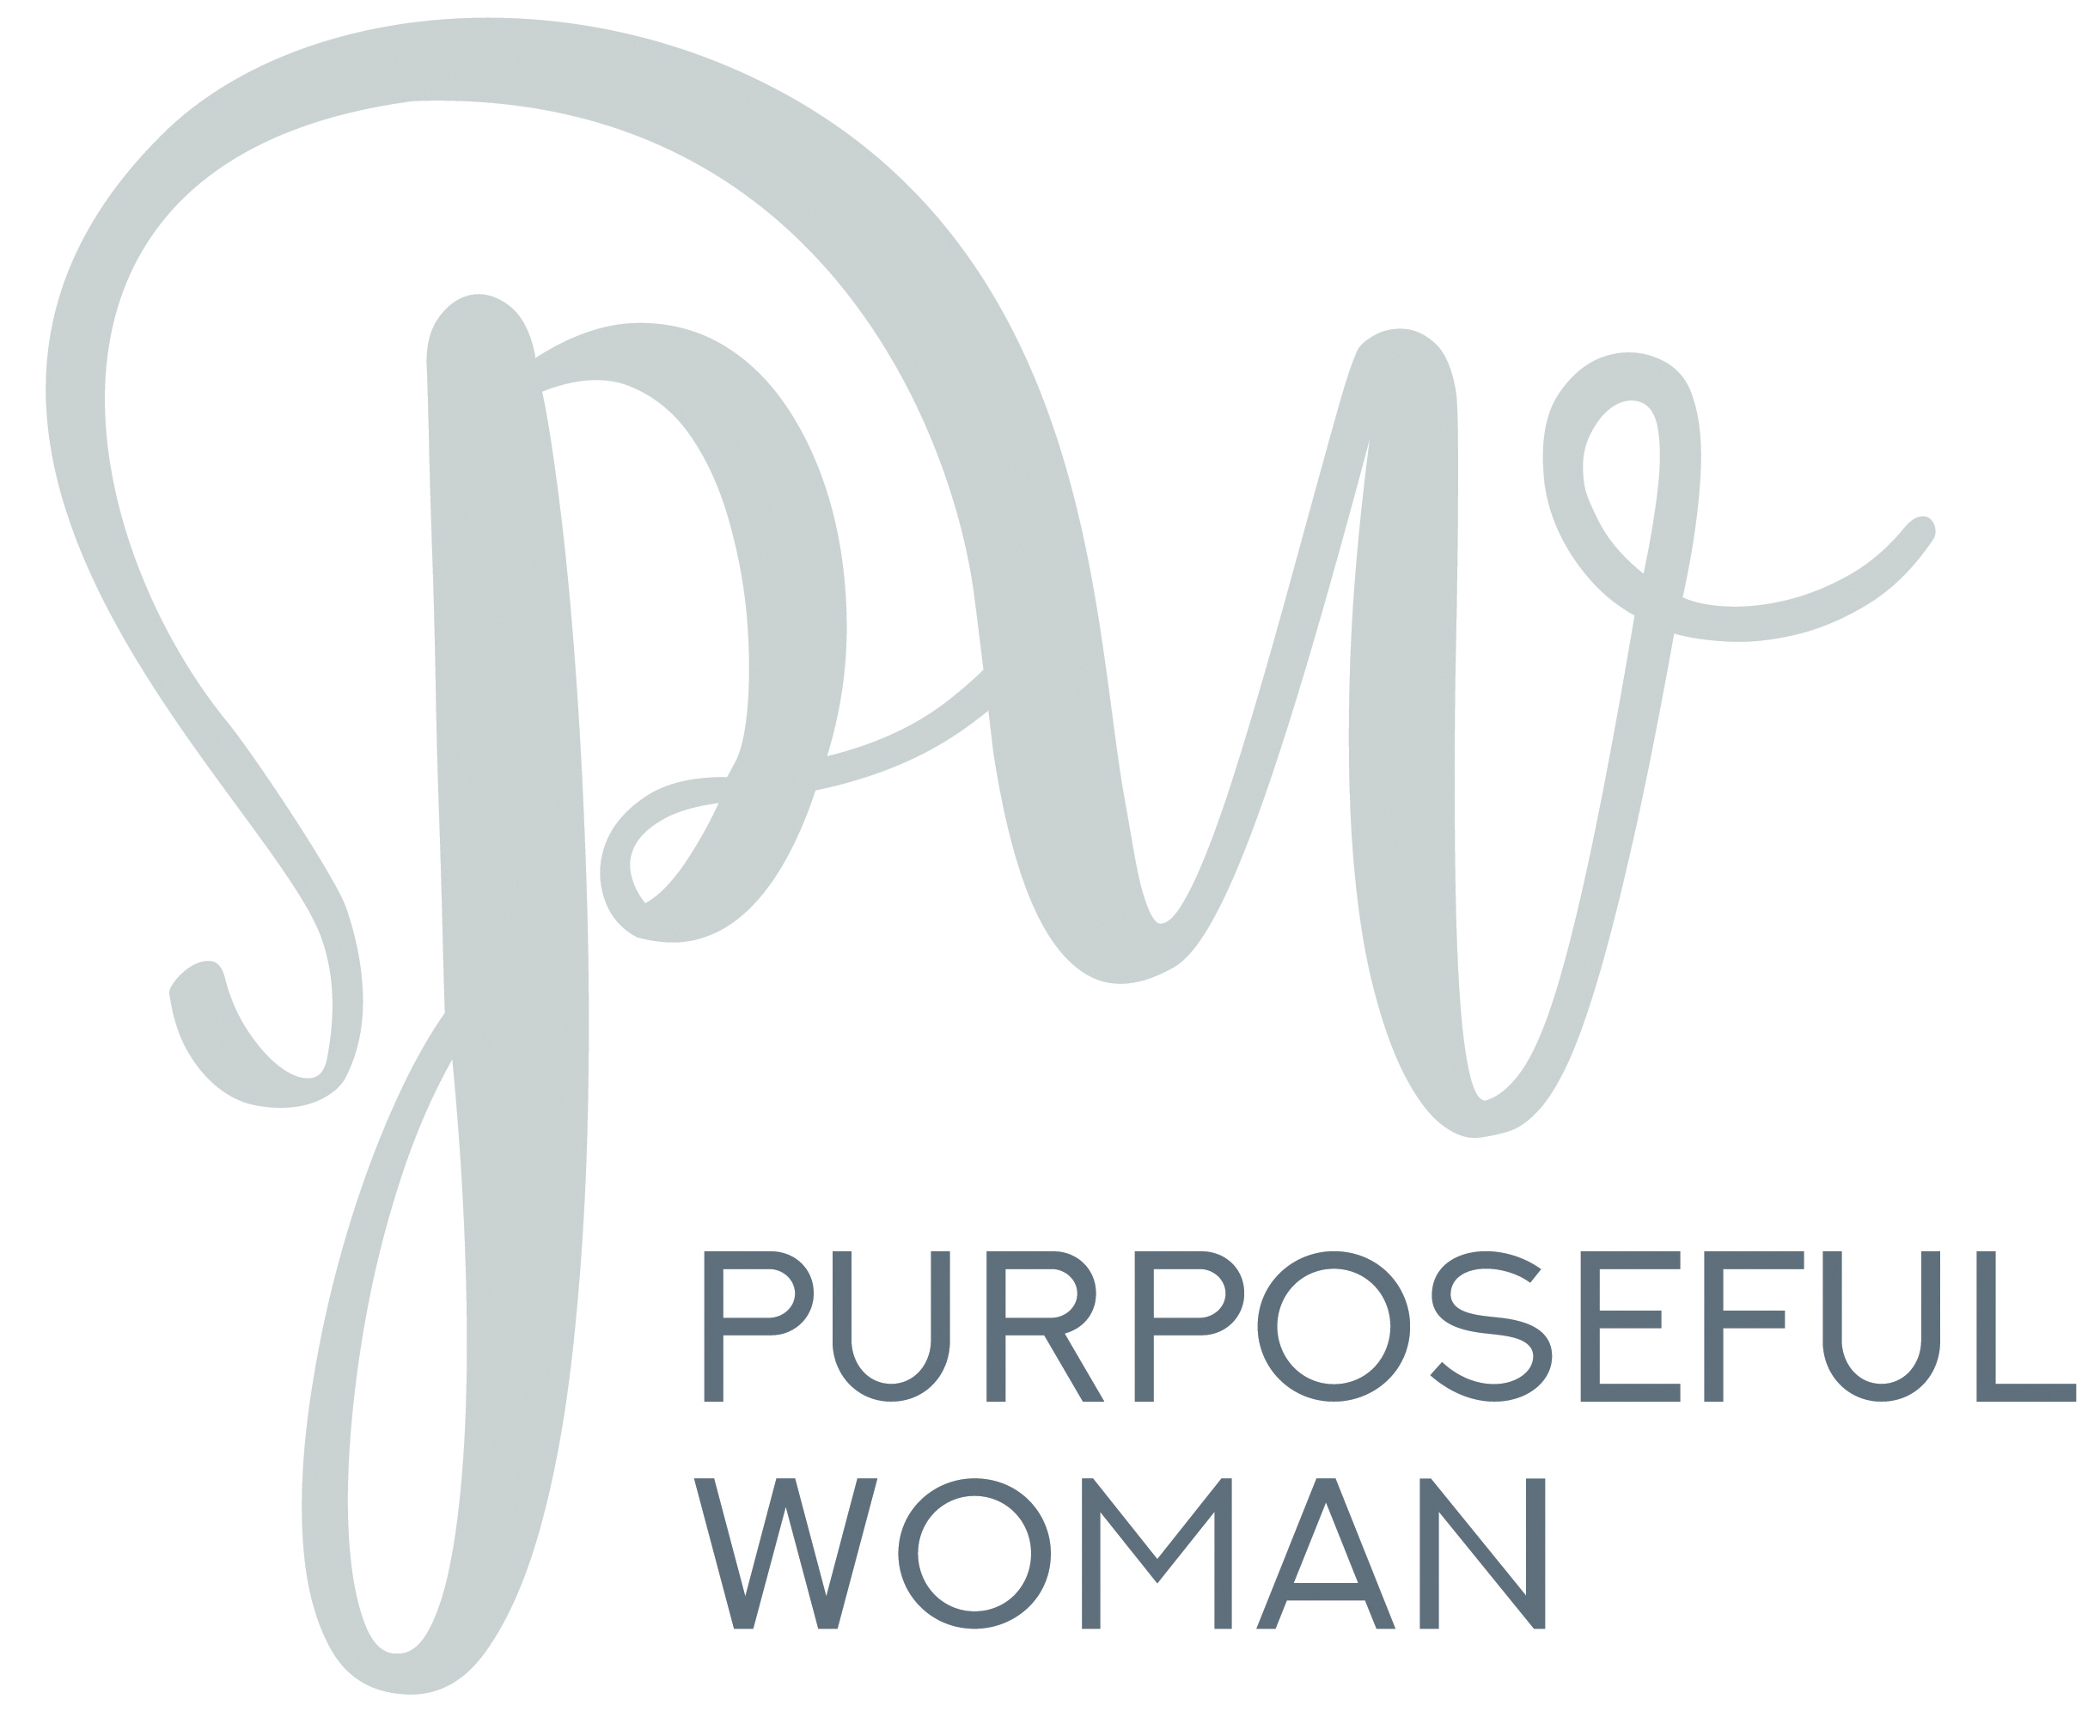 Purposeful Woman